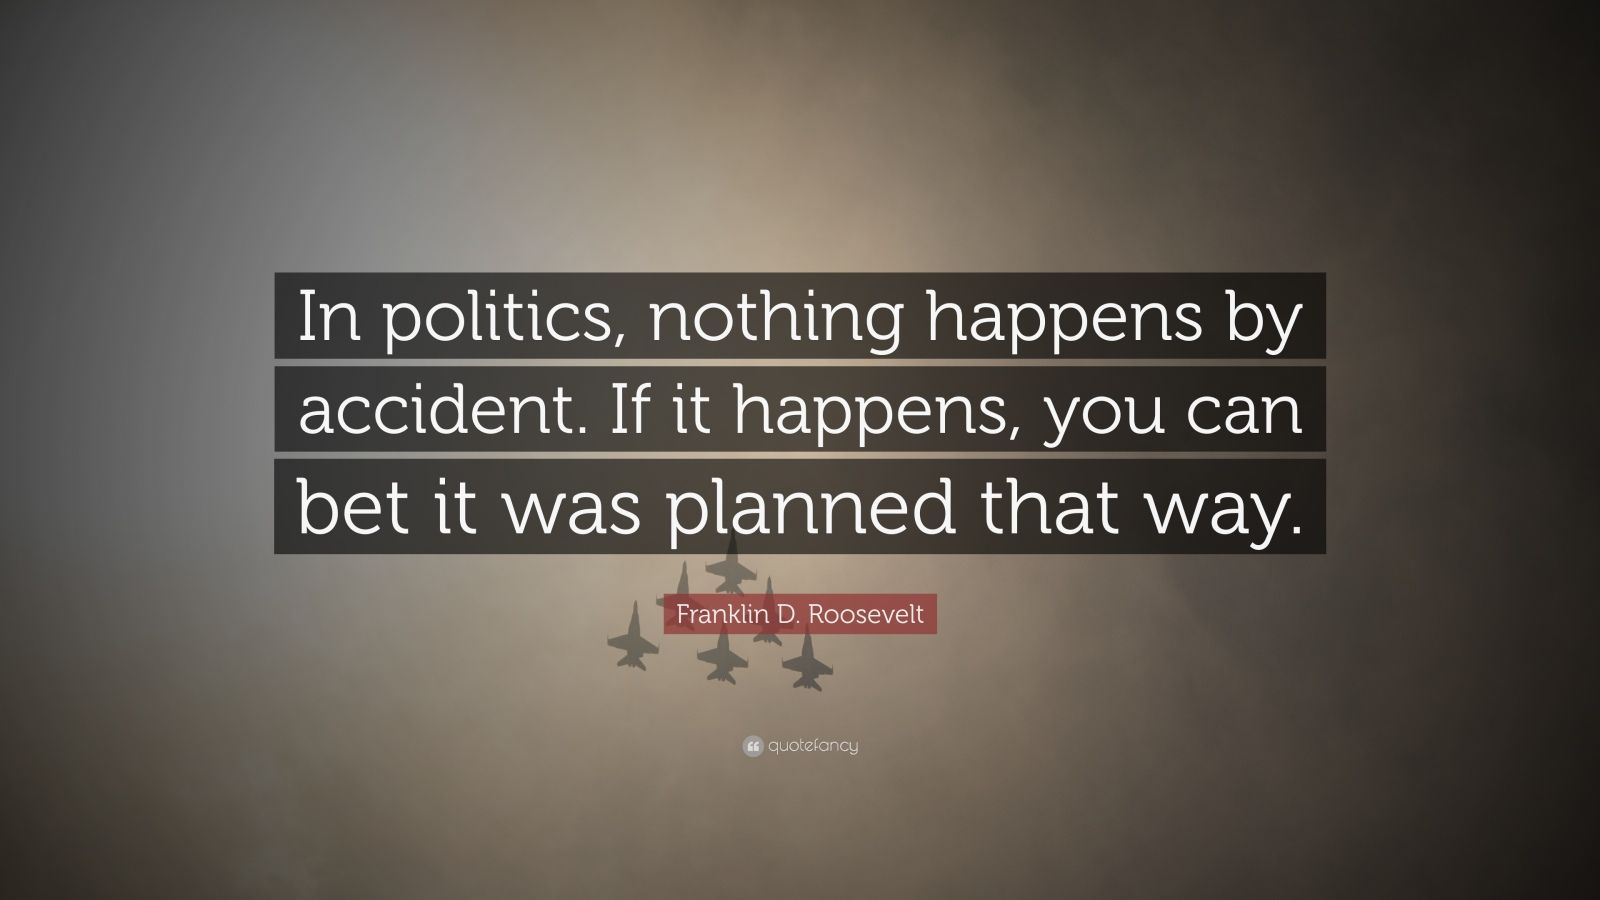 """Franklin D. Roosevelt Quote: """"In politics, nothing happens by accident. If it happens, you can bet it was planned that way."""""""